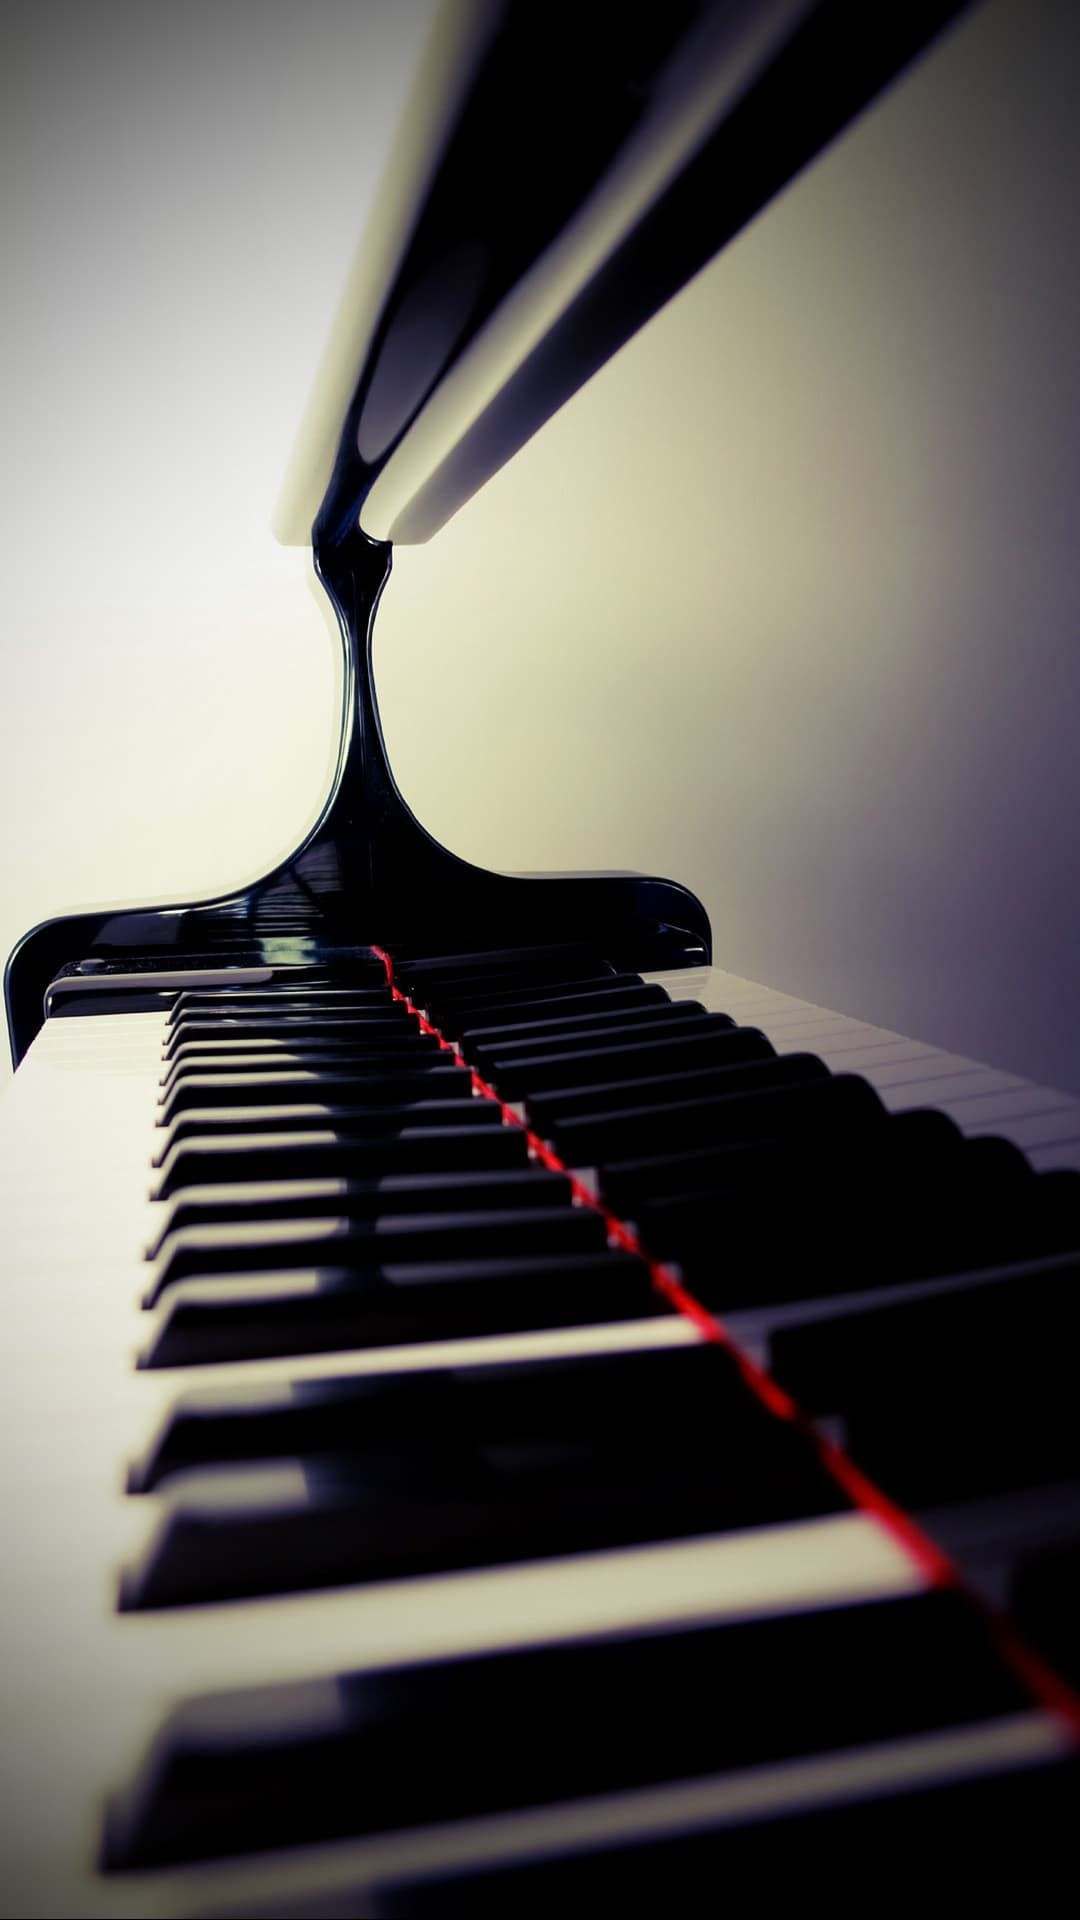 Pin By Julia On Hd Wallpapers Piano Music Music Wallpaper